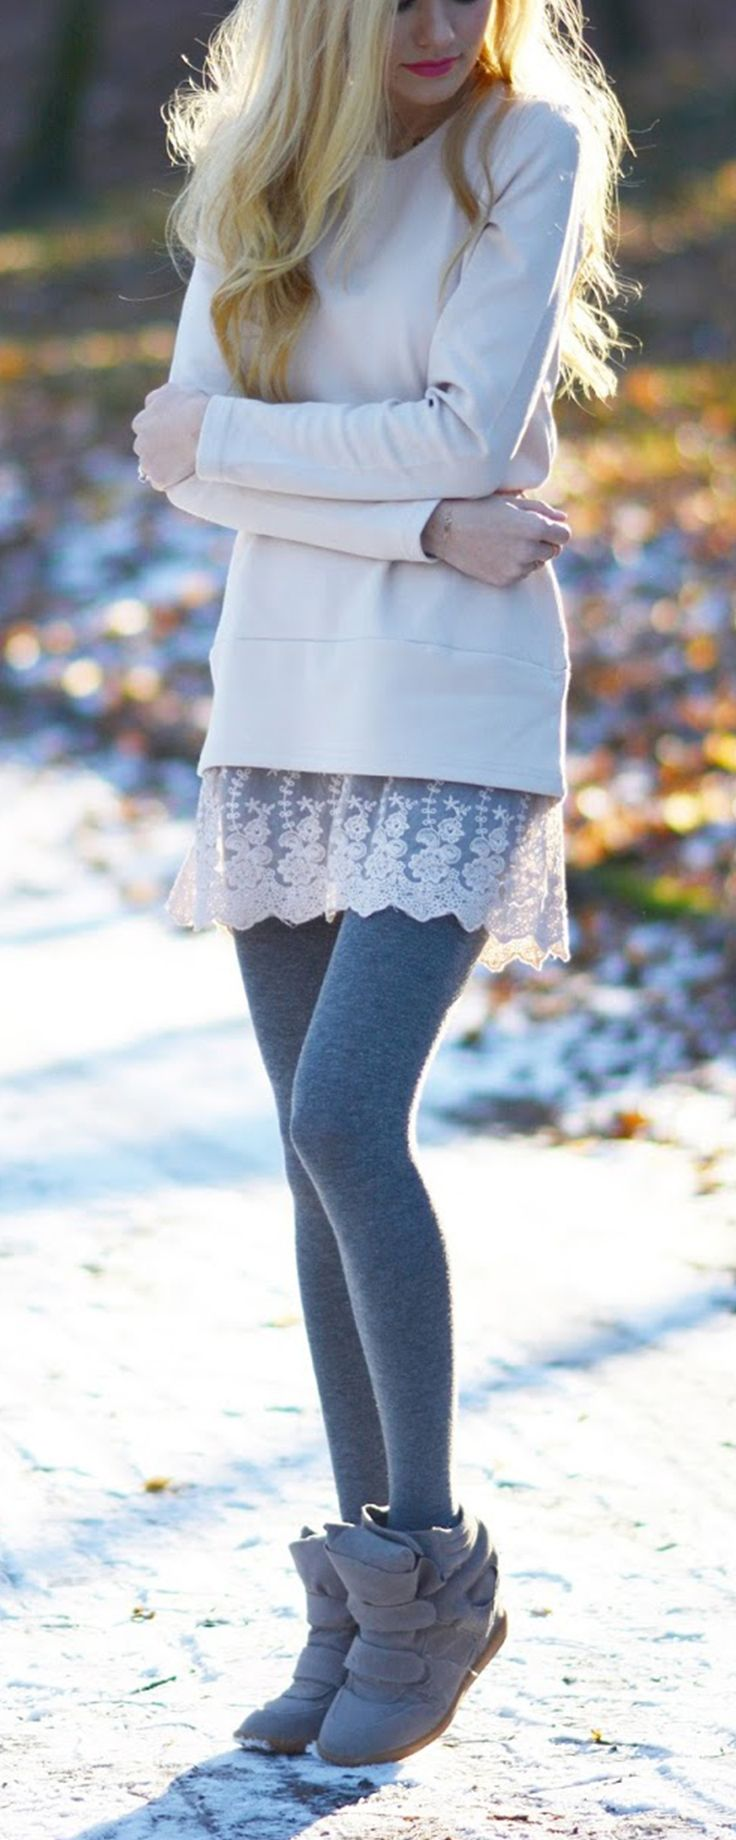 Apricot Long Sleeve With Lace Dress  US$17.99